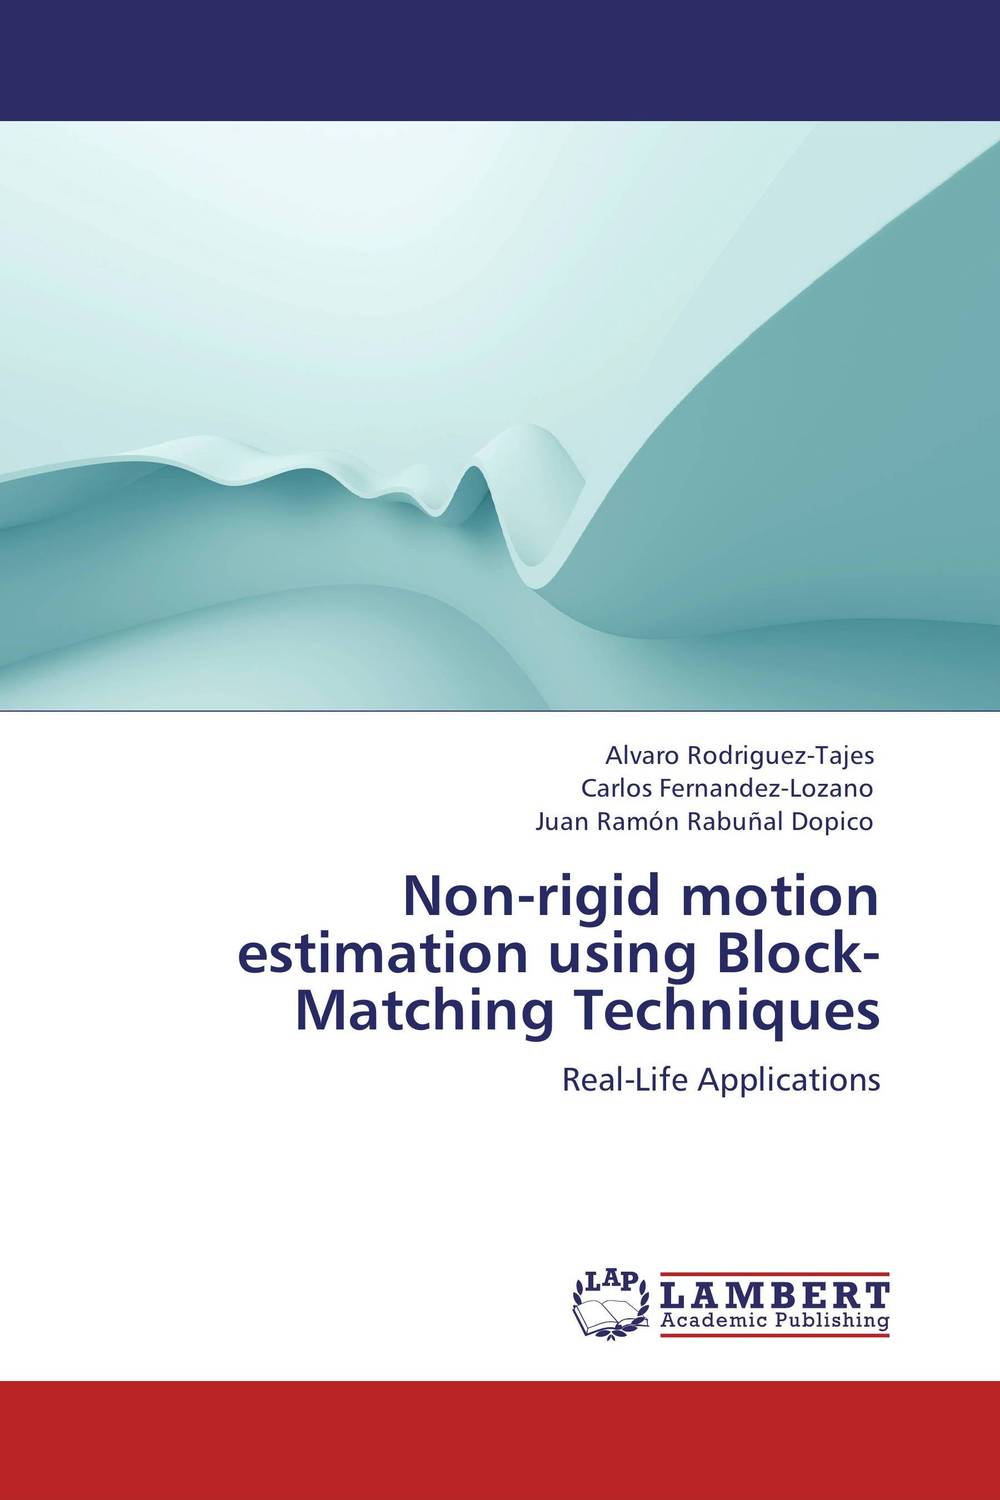 Non-rigid motion estimation using Block-Matching Techniques peace education at the national university of rwanda